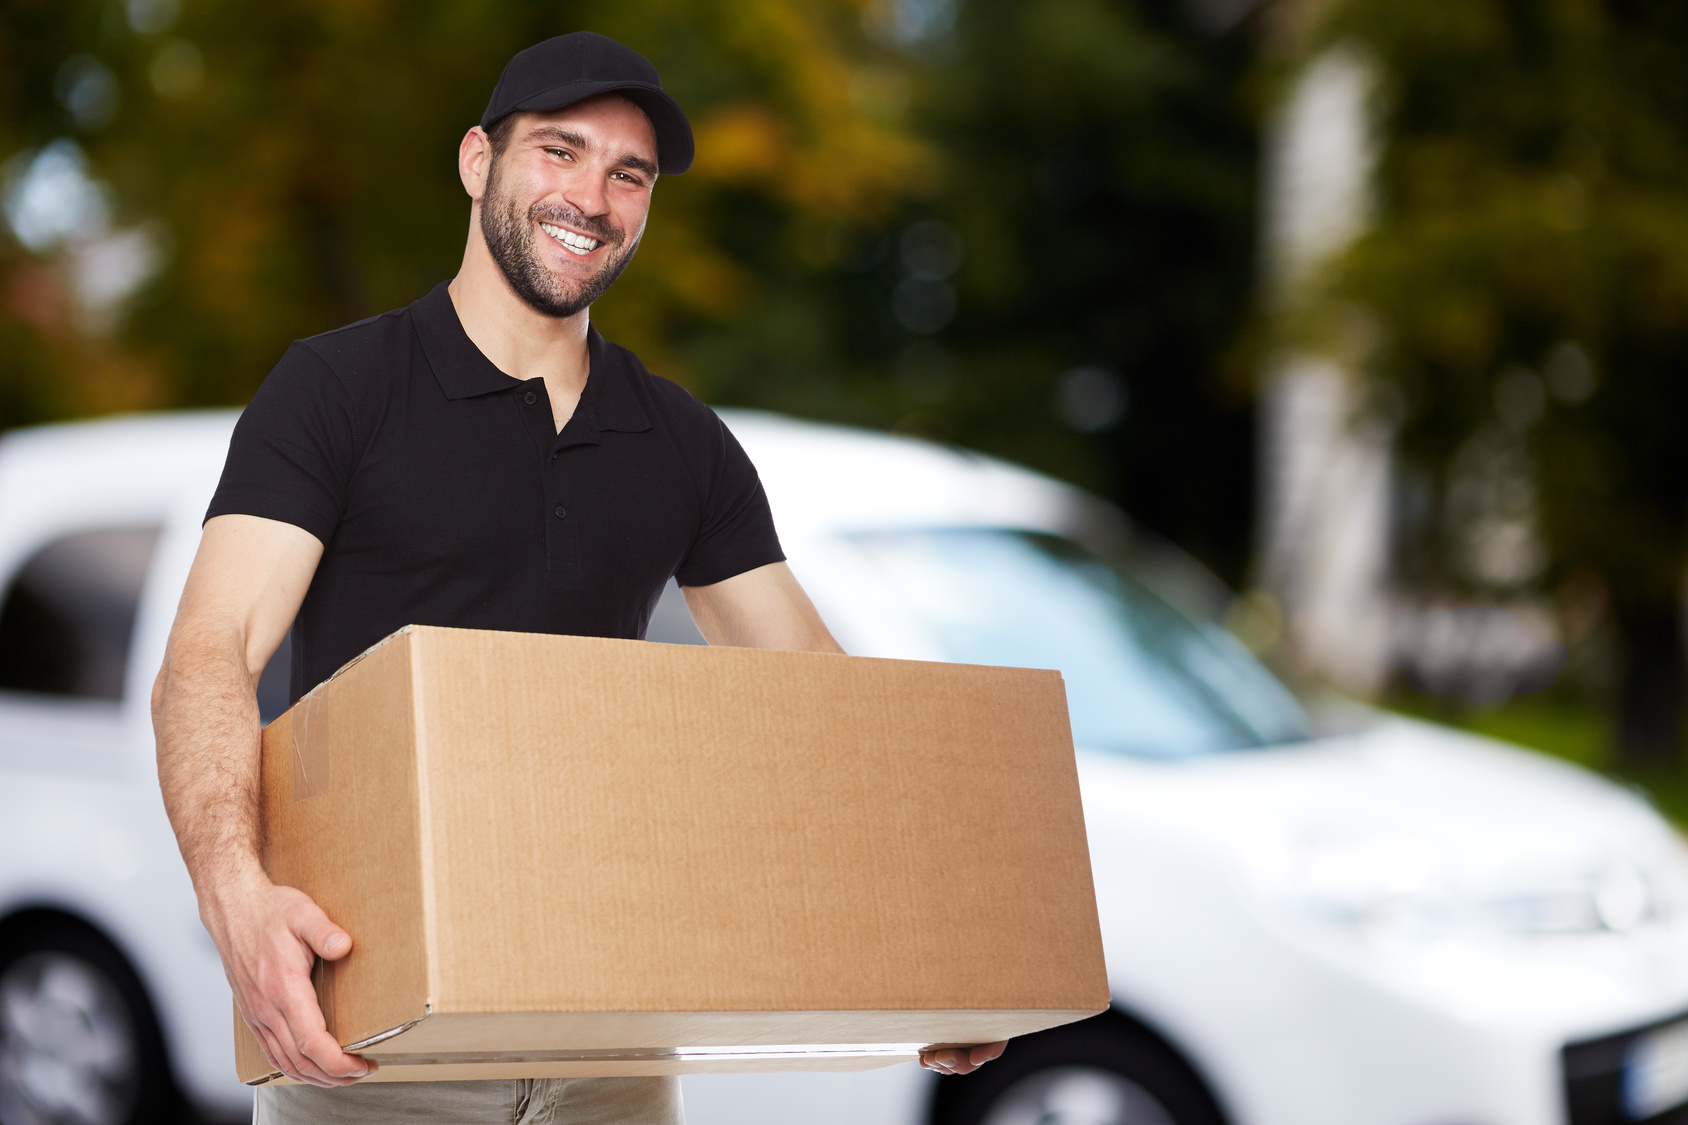 B2B Courier Business for Sale - Make an Offer